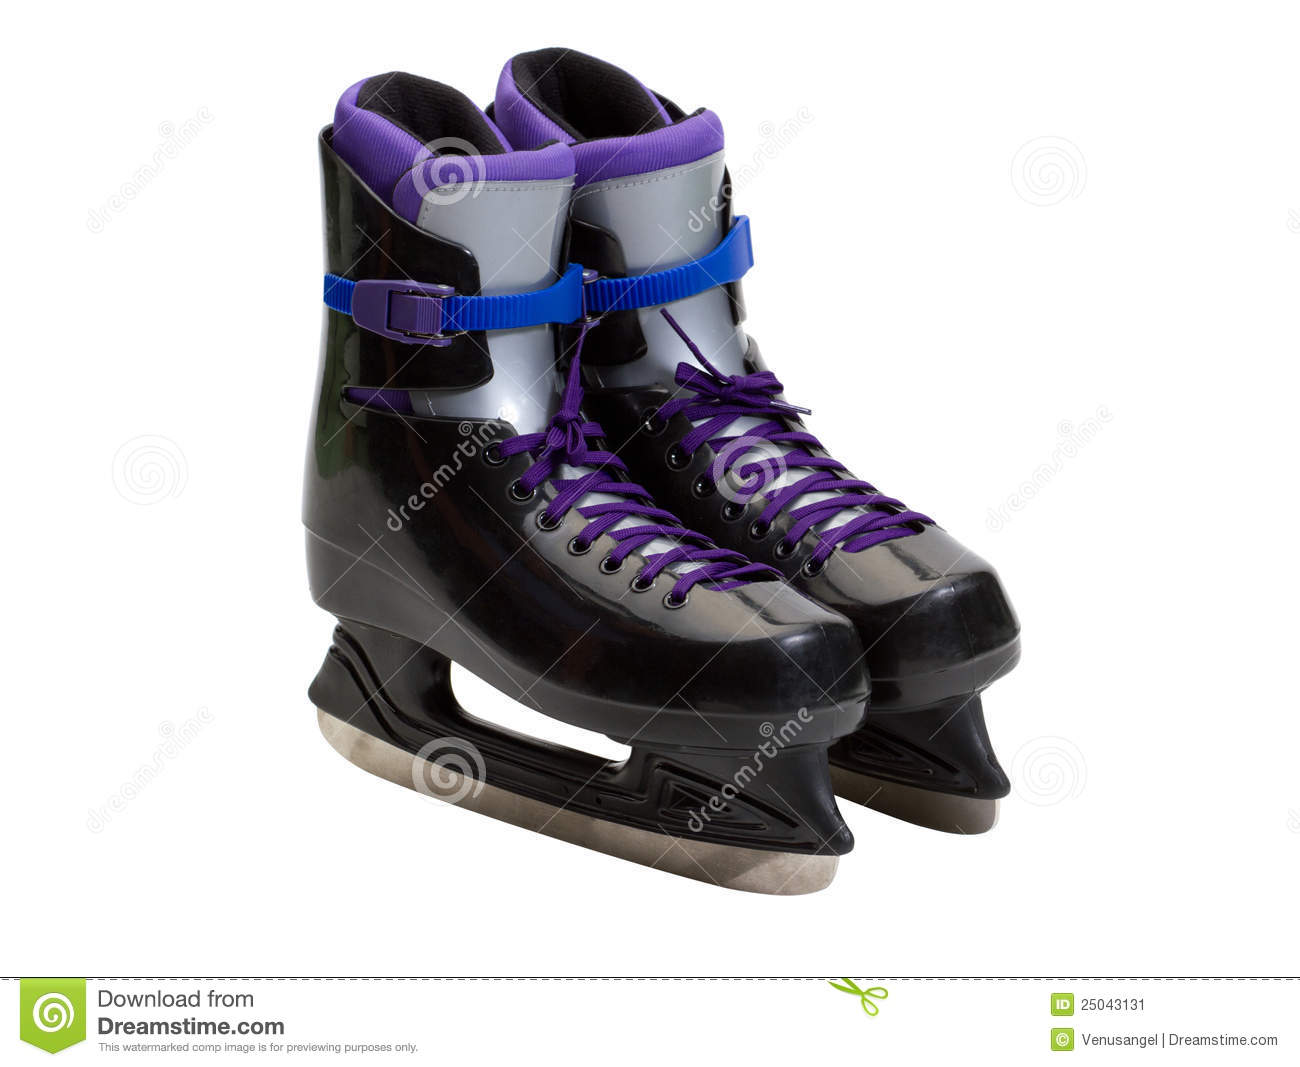 Skate shoes pictures - Ice Skate Shoes